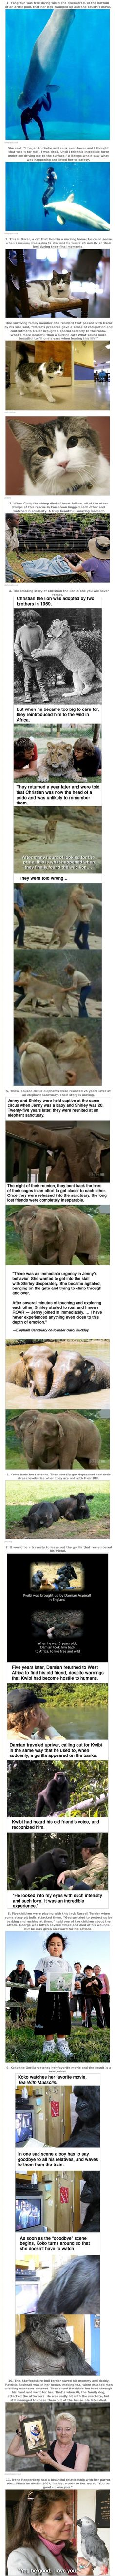 Its always heart warming to read such stuff... Animals are the best souls!